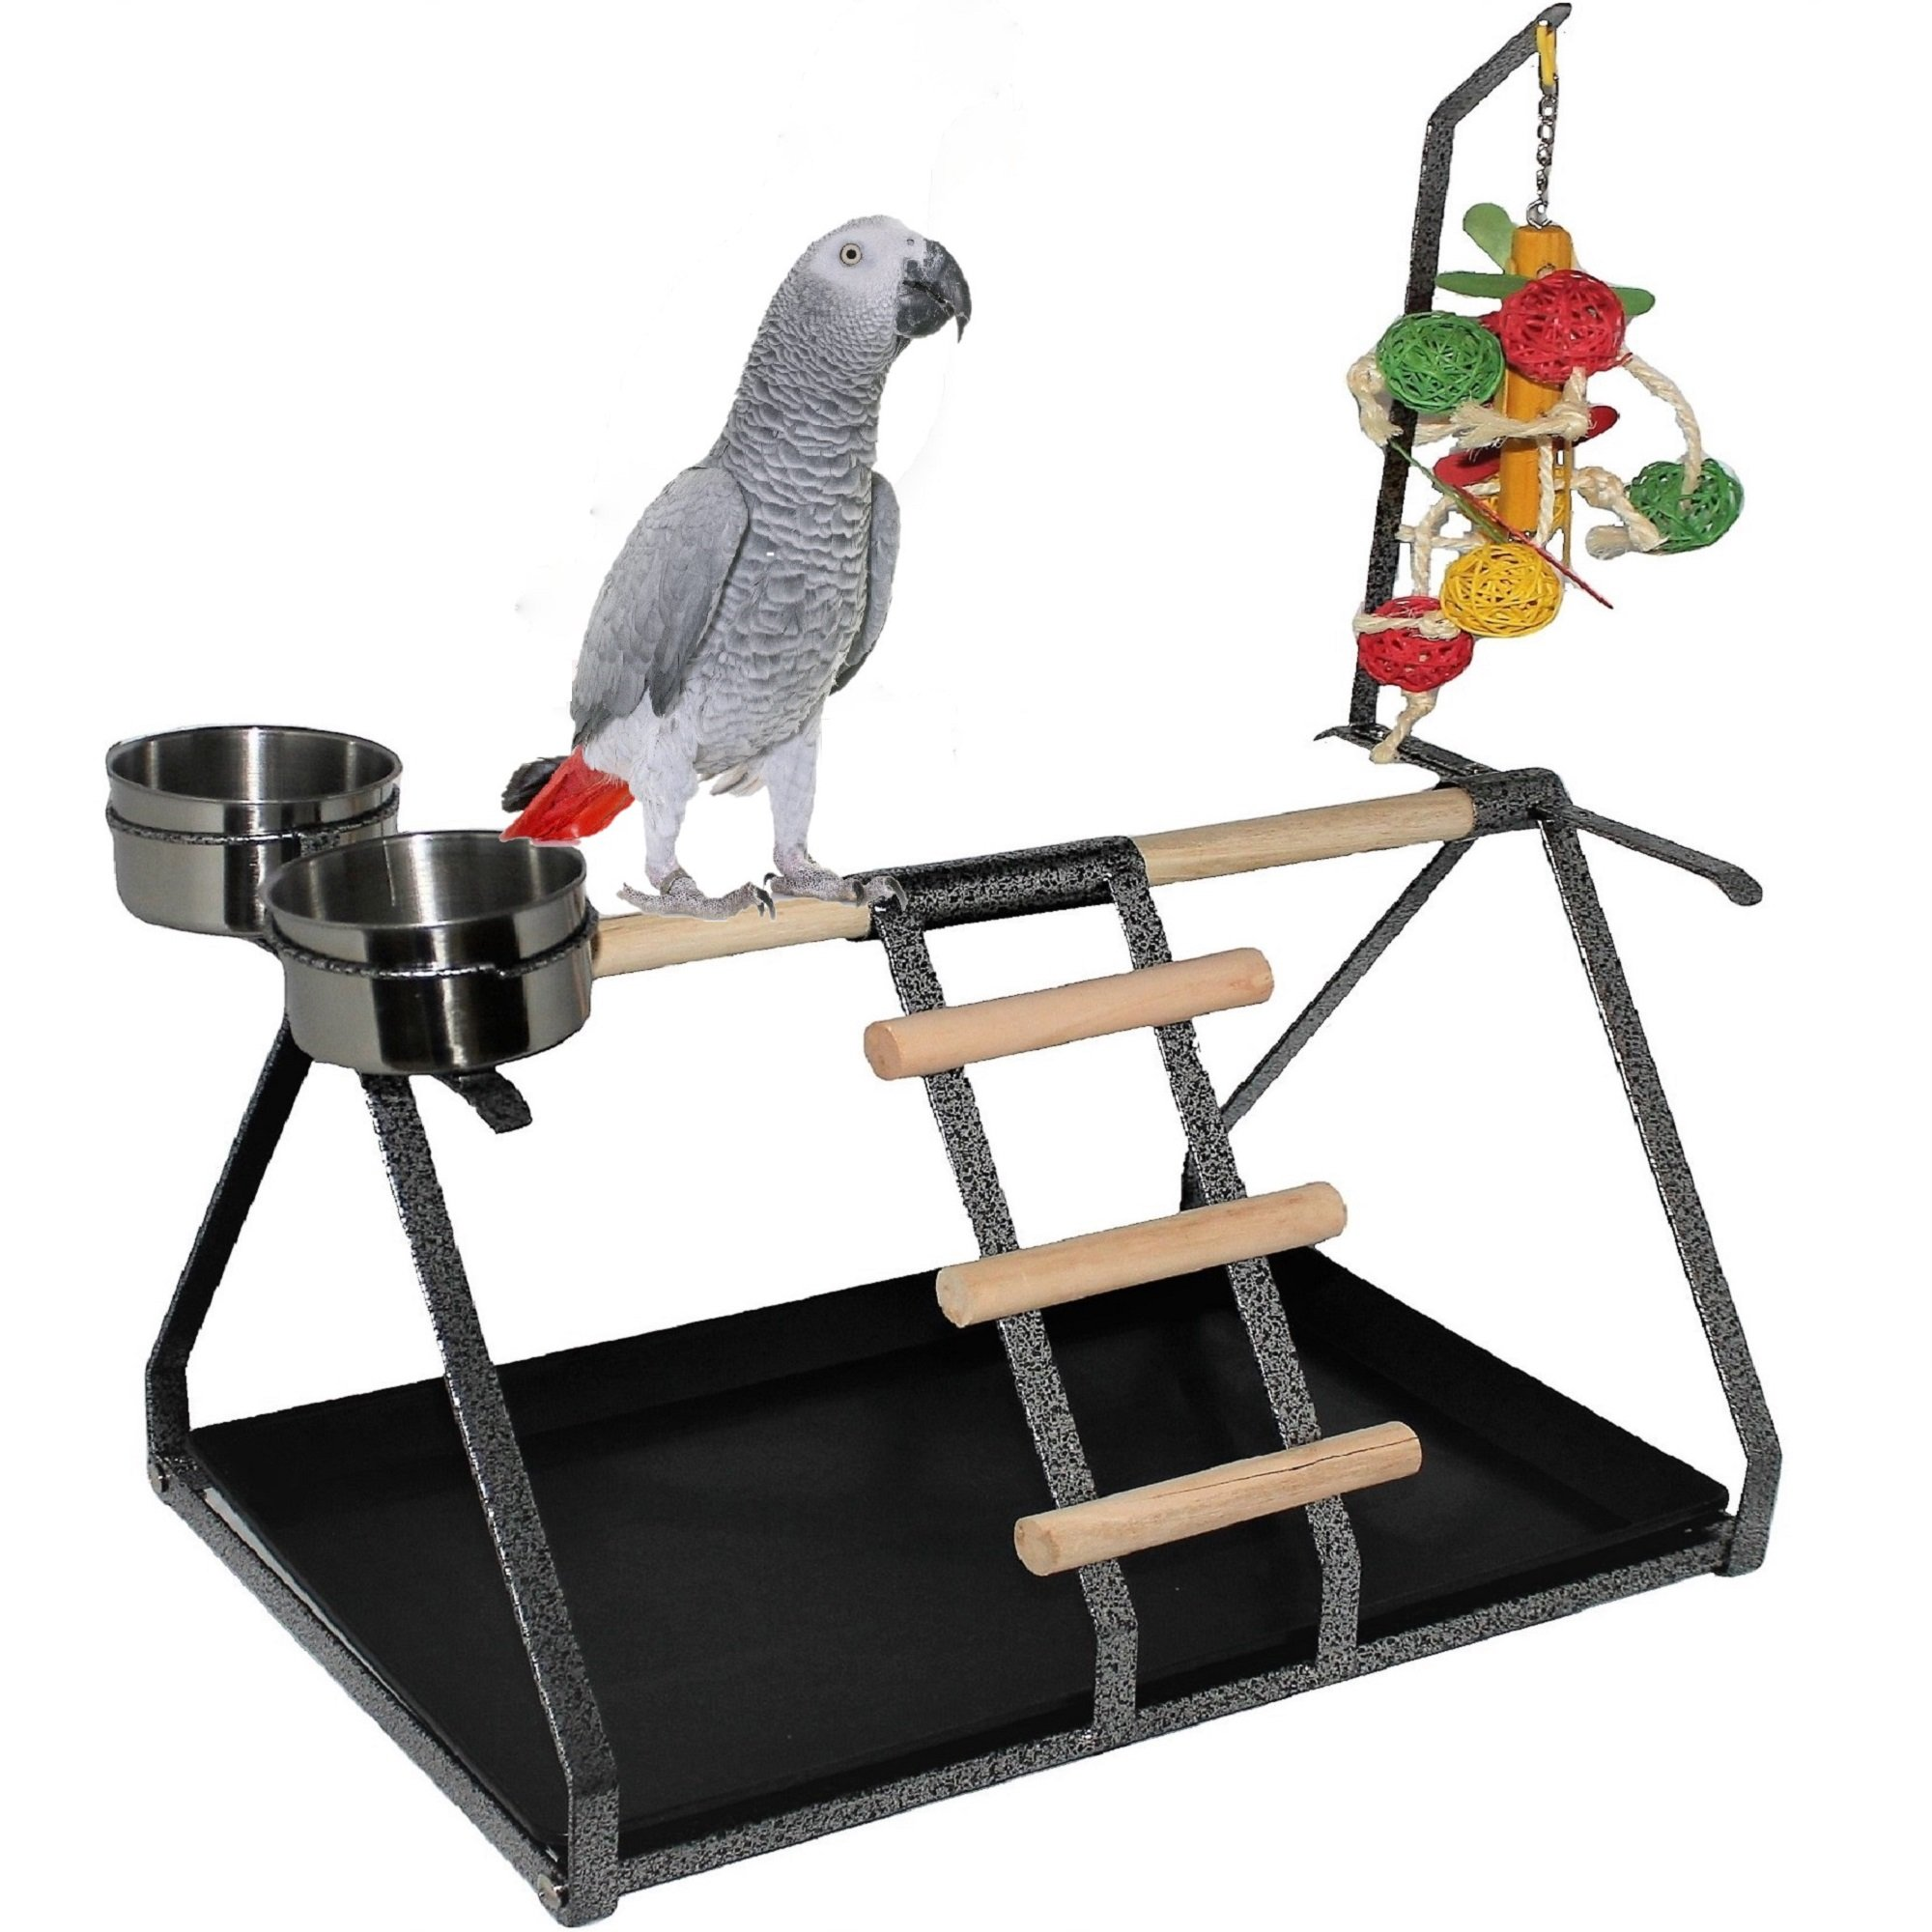 """FDC Parrot Bird Perch Table Top Stand Metal Wood 2 Steel Cups Play for Medium and Large Breeds 17.5"""" x 12.5"""" x 11"""""""